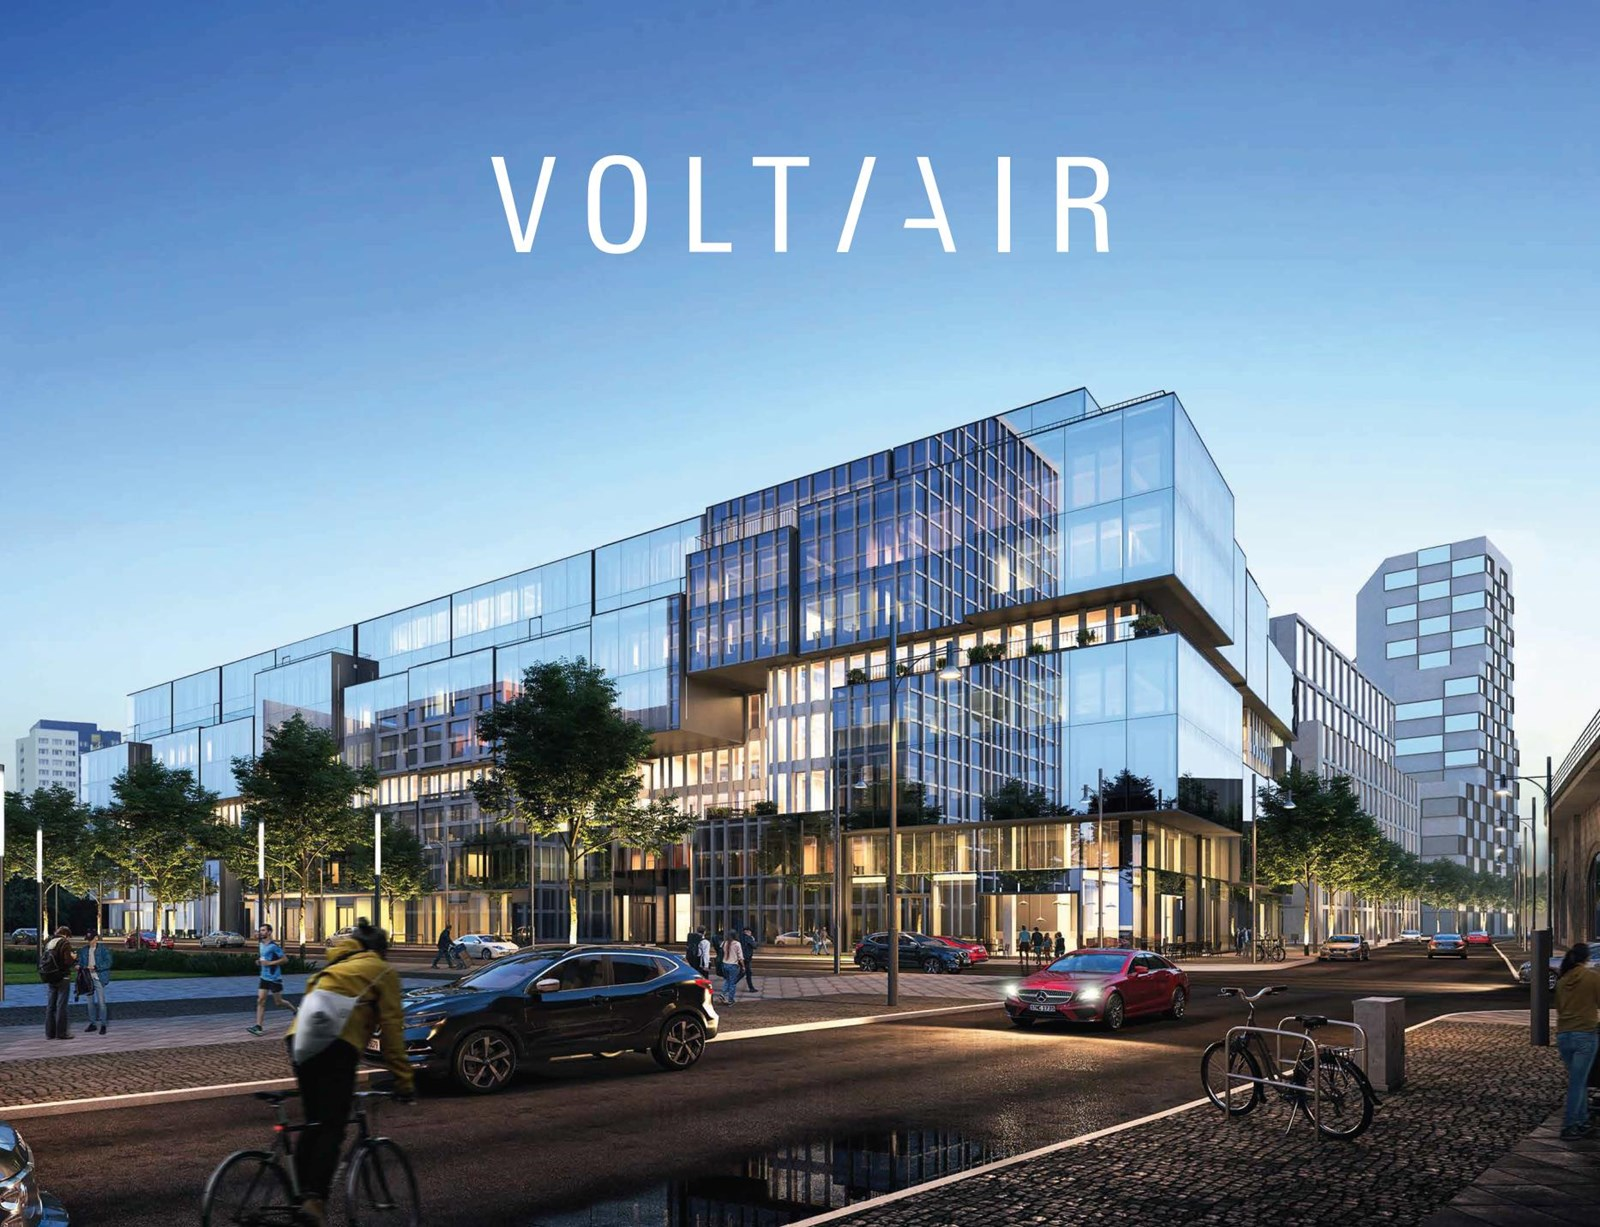 VolTair-Copyright ABG Real Estate Group.jpg